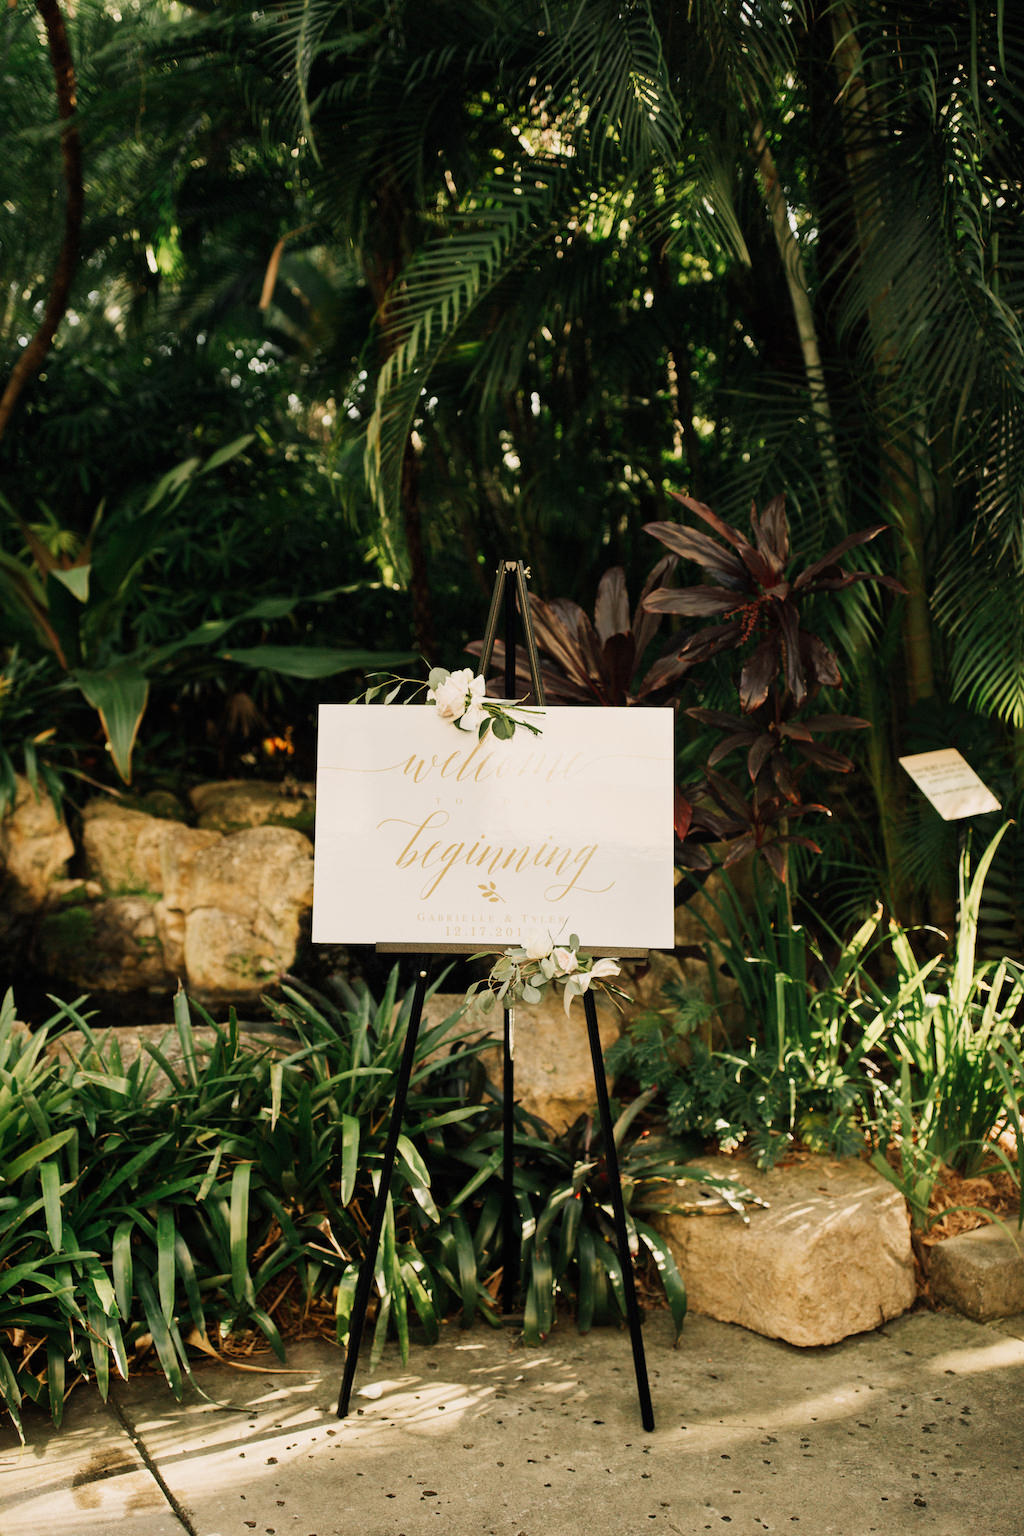 Gold Cursive Script Outdoor Garden Wedding Ceremony Welcome Sign with Roses and Greenery